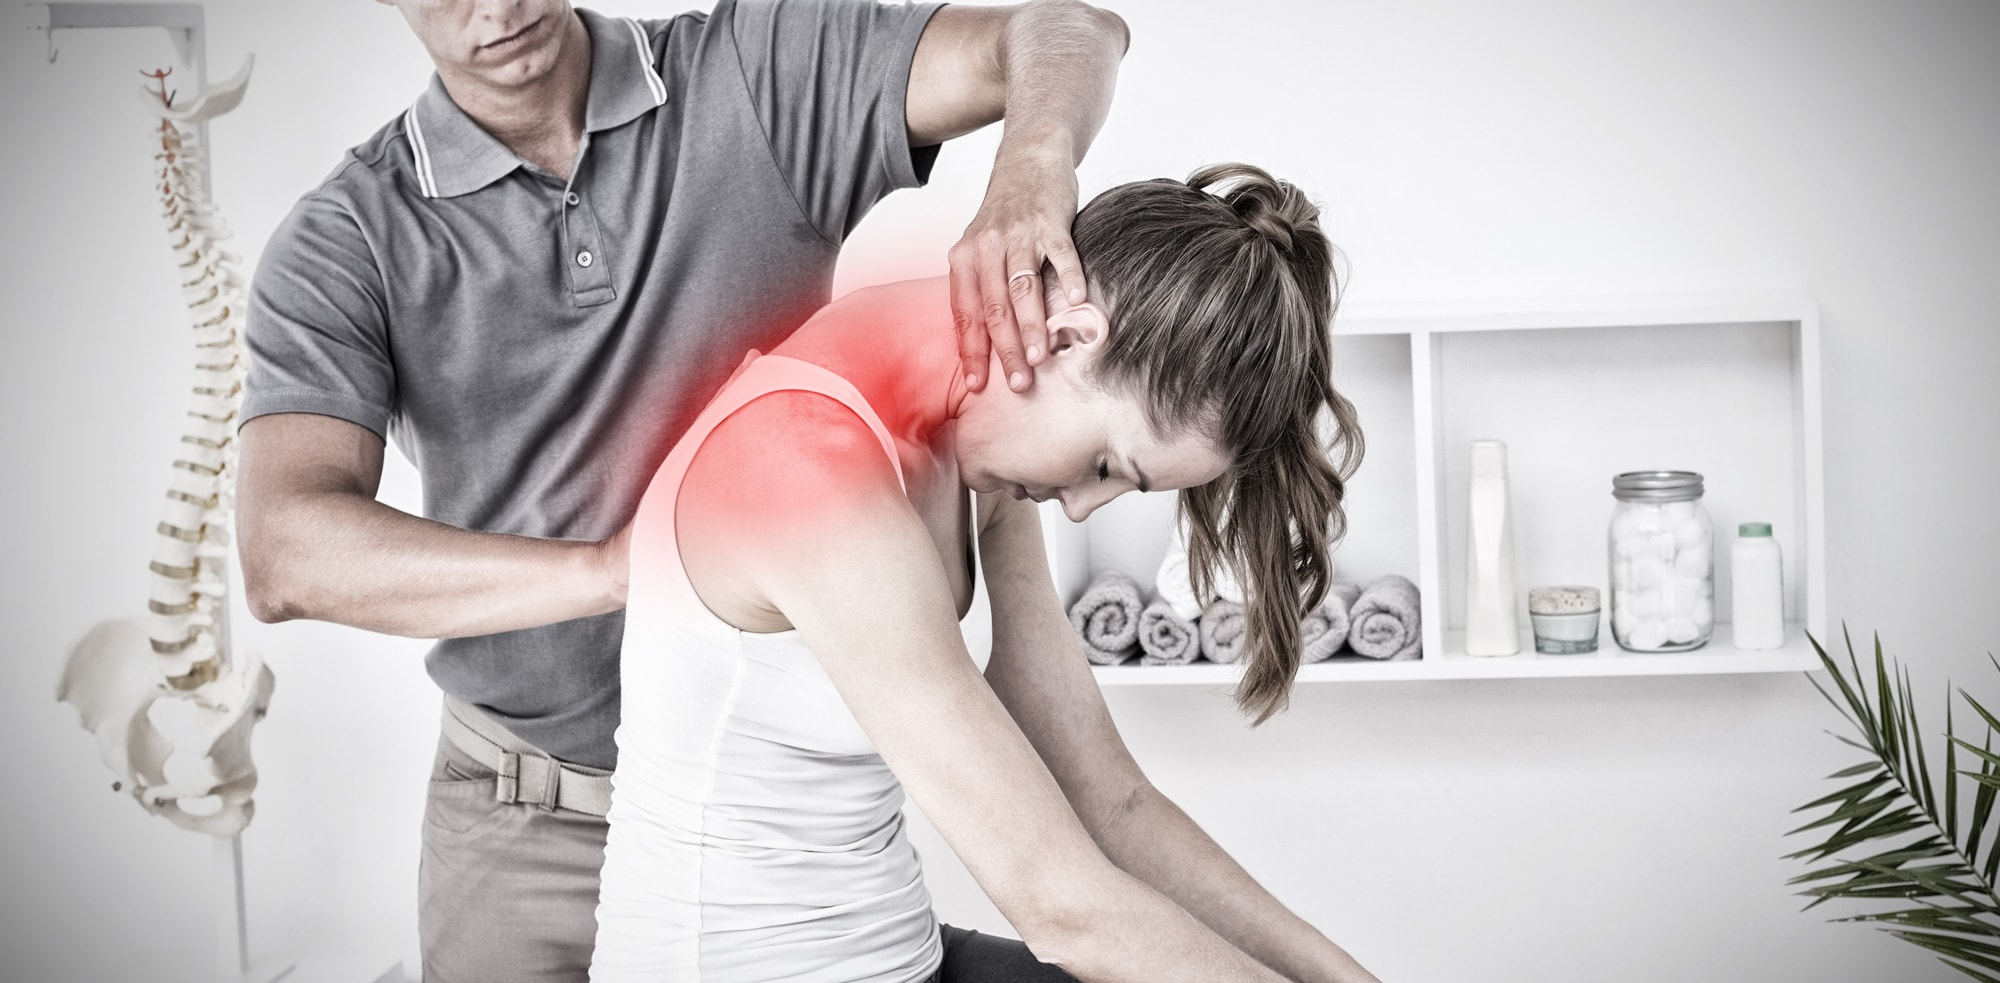 Are you suffering with neck pain due to bad posture or an injury?